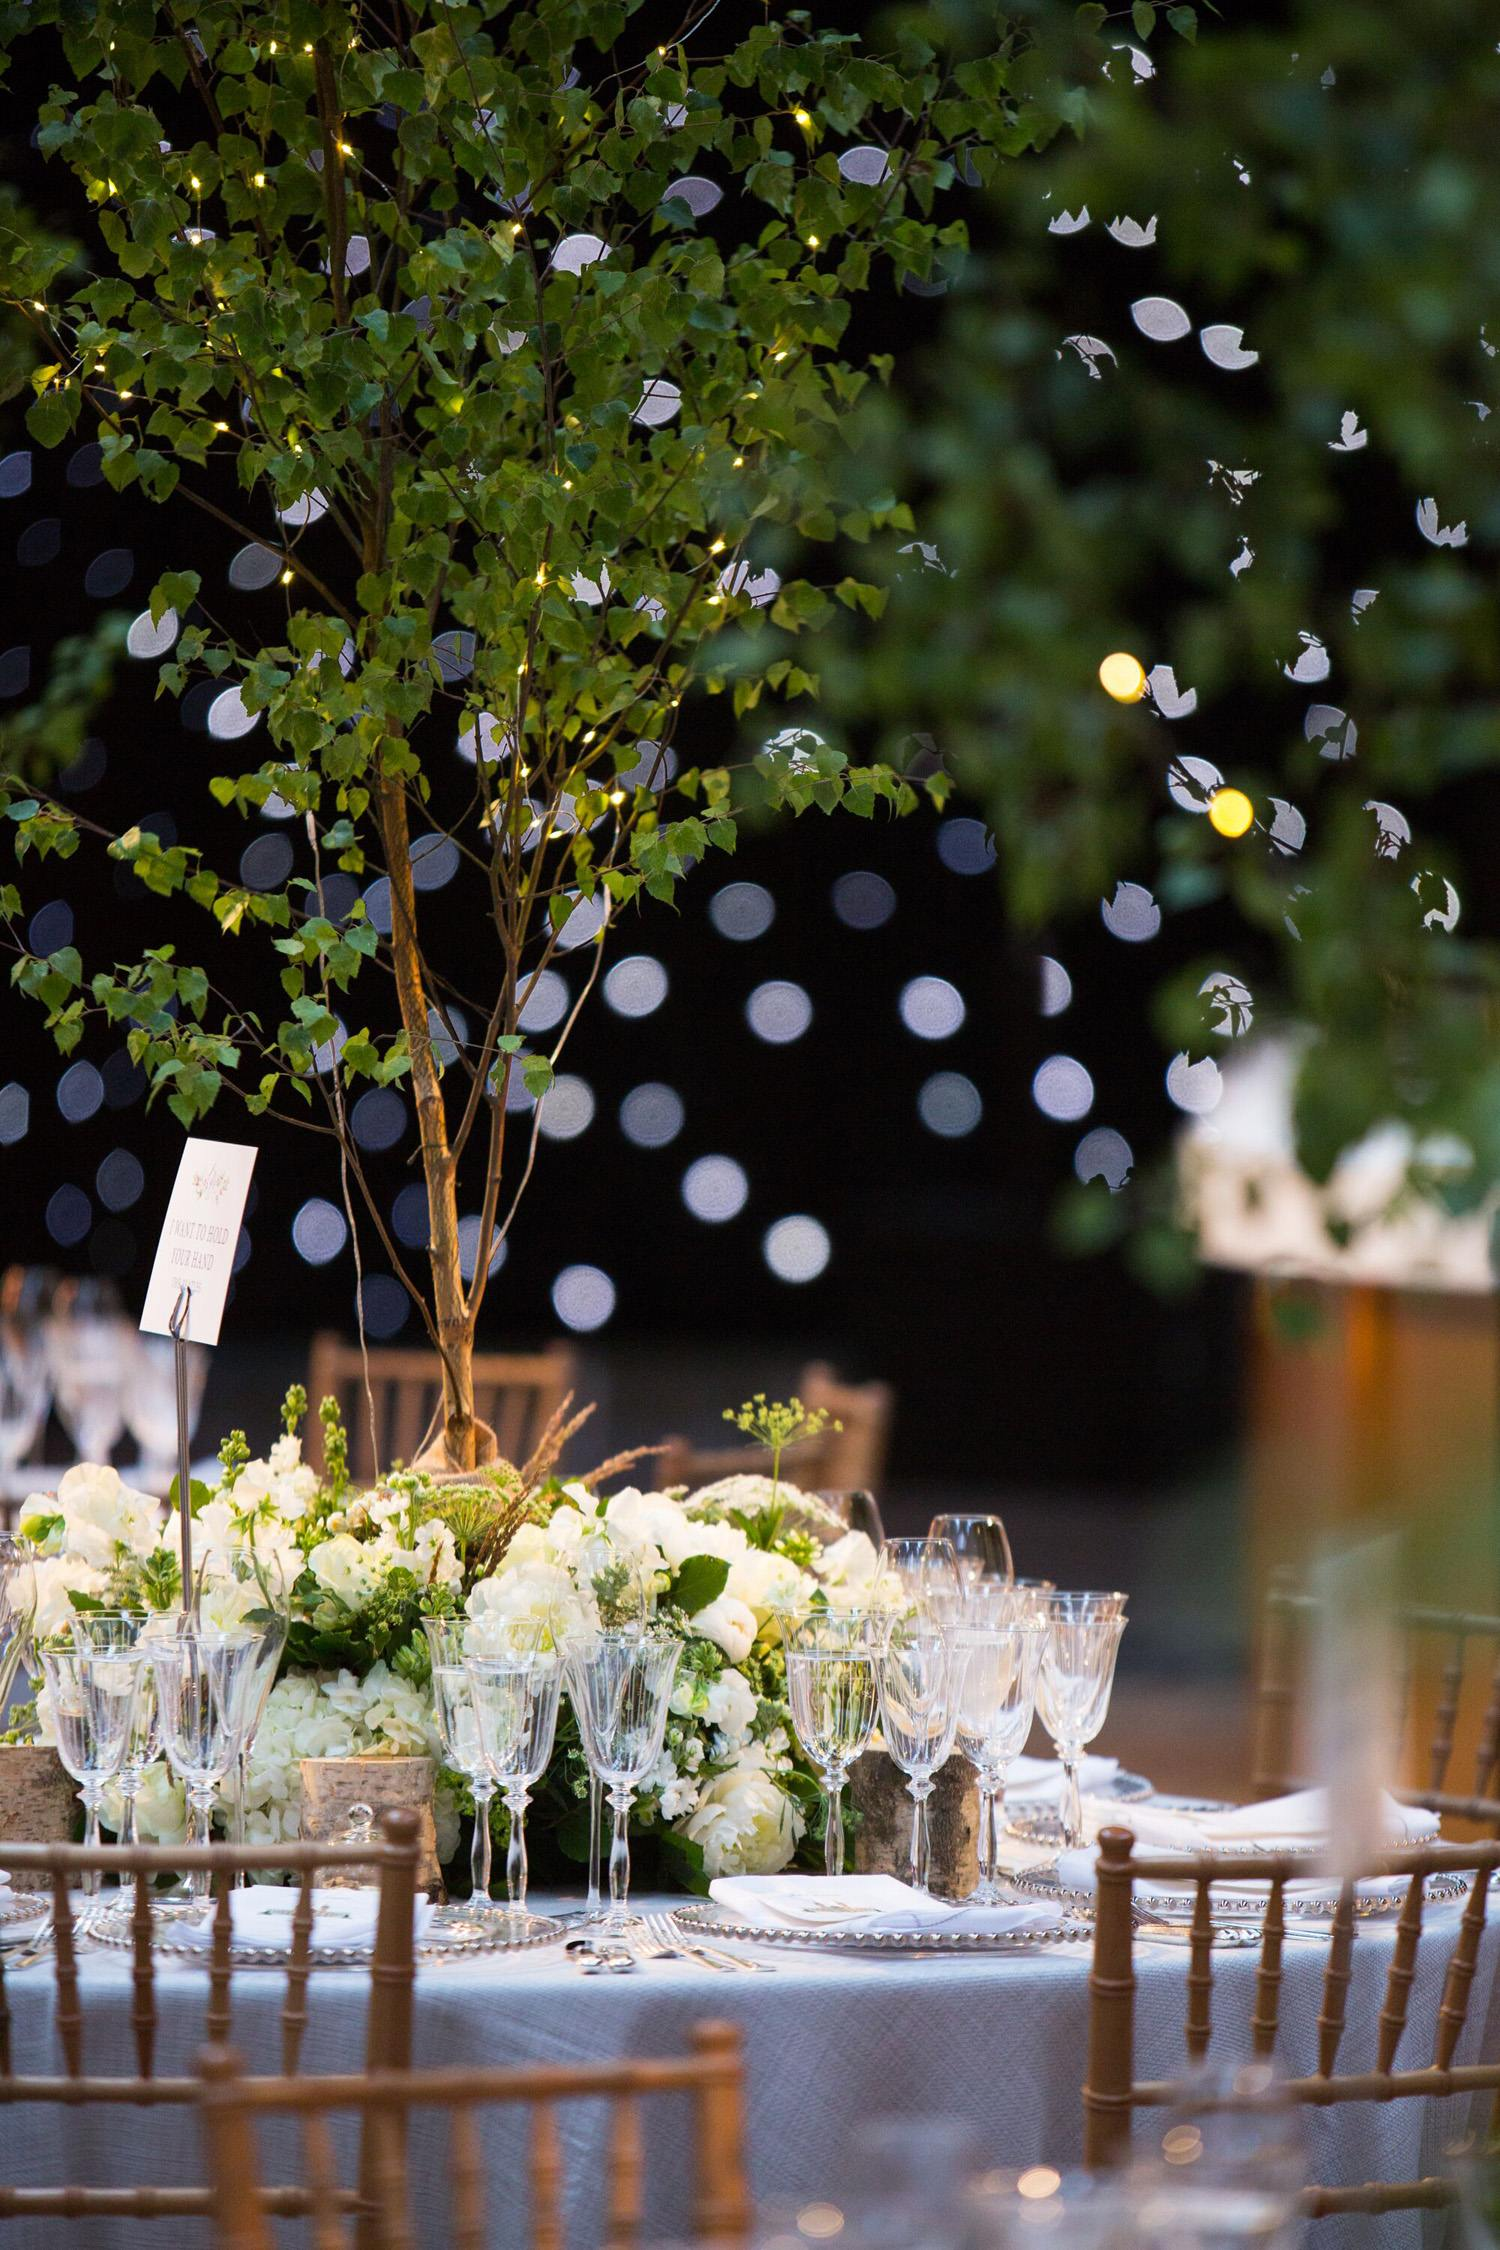 Littleton-Rose-Natural-History-Museum-London-Wedding-Planners-Table-Centres.jpg